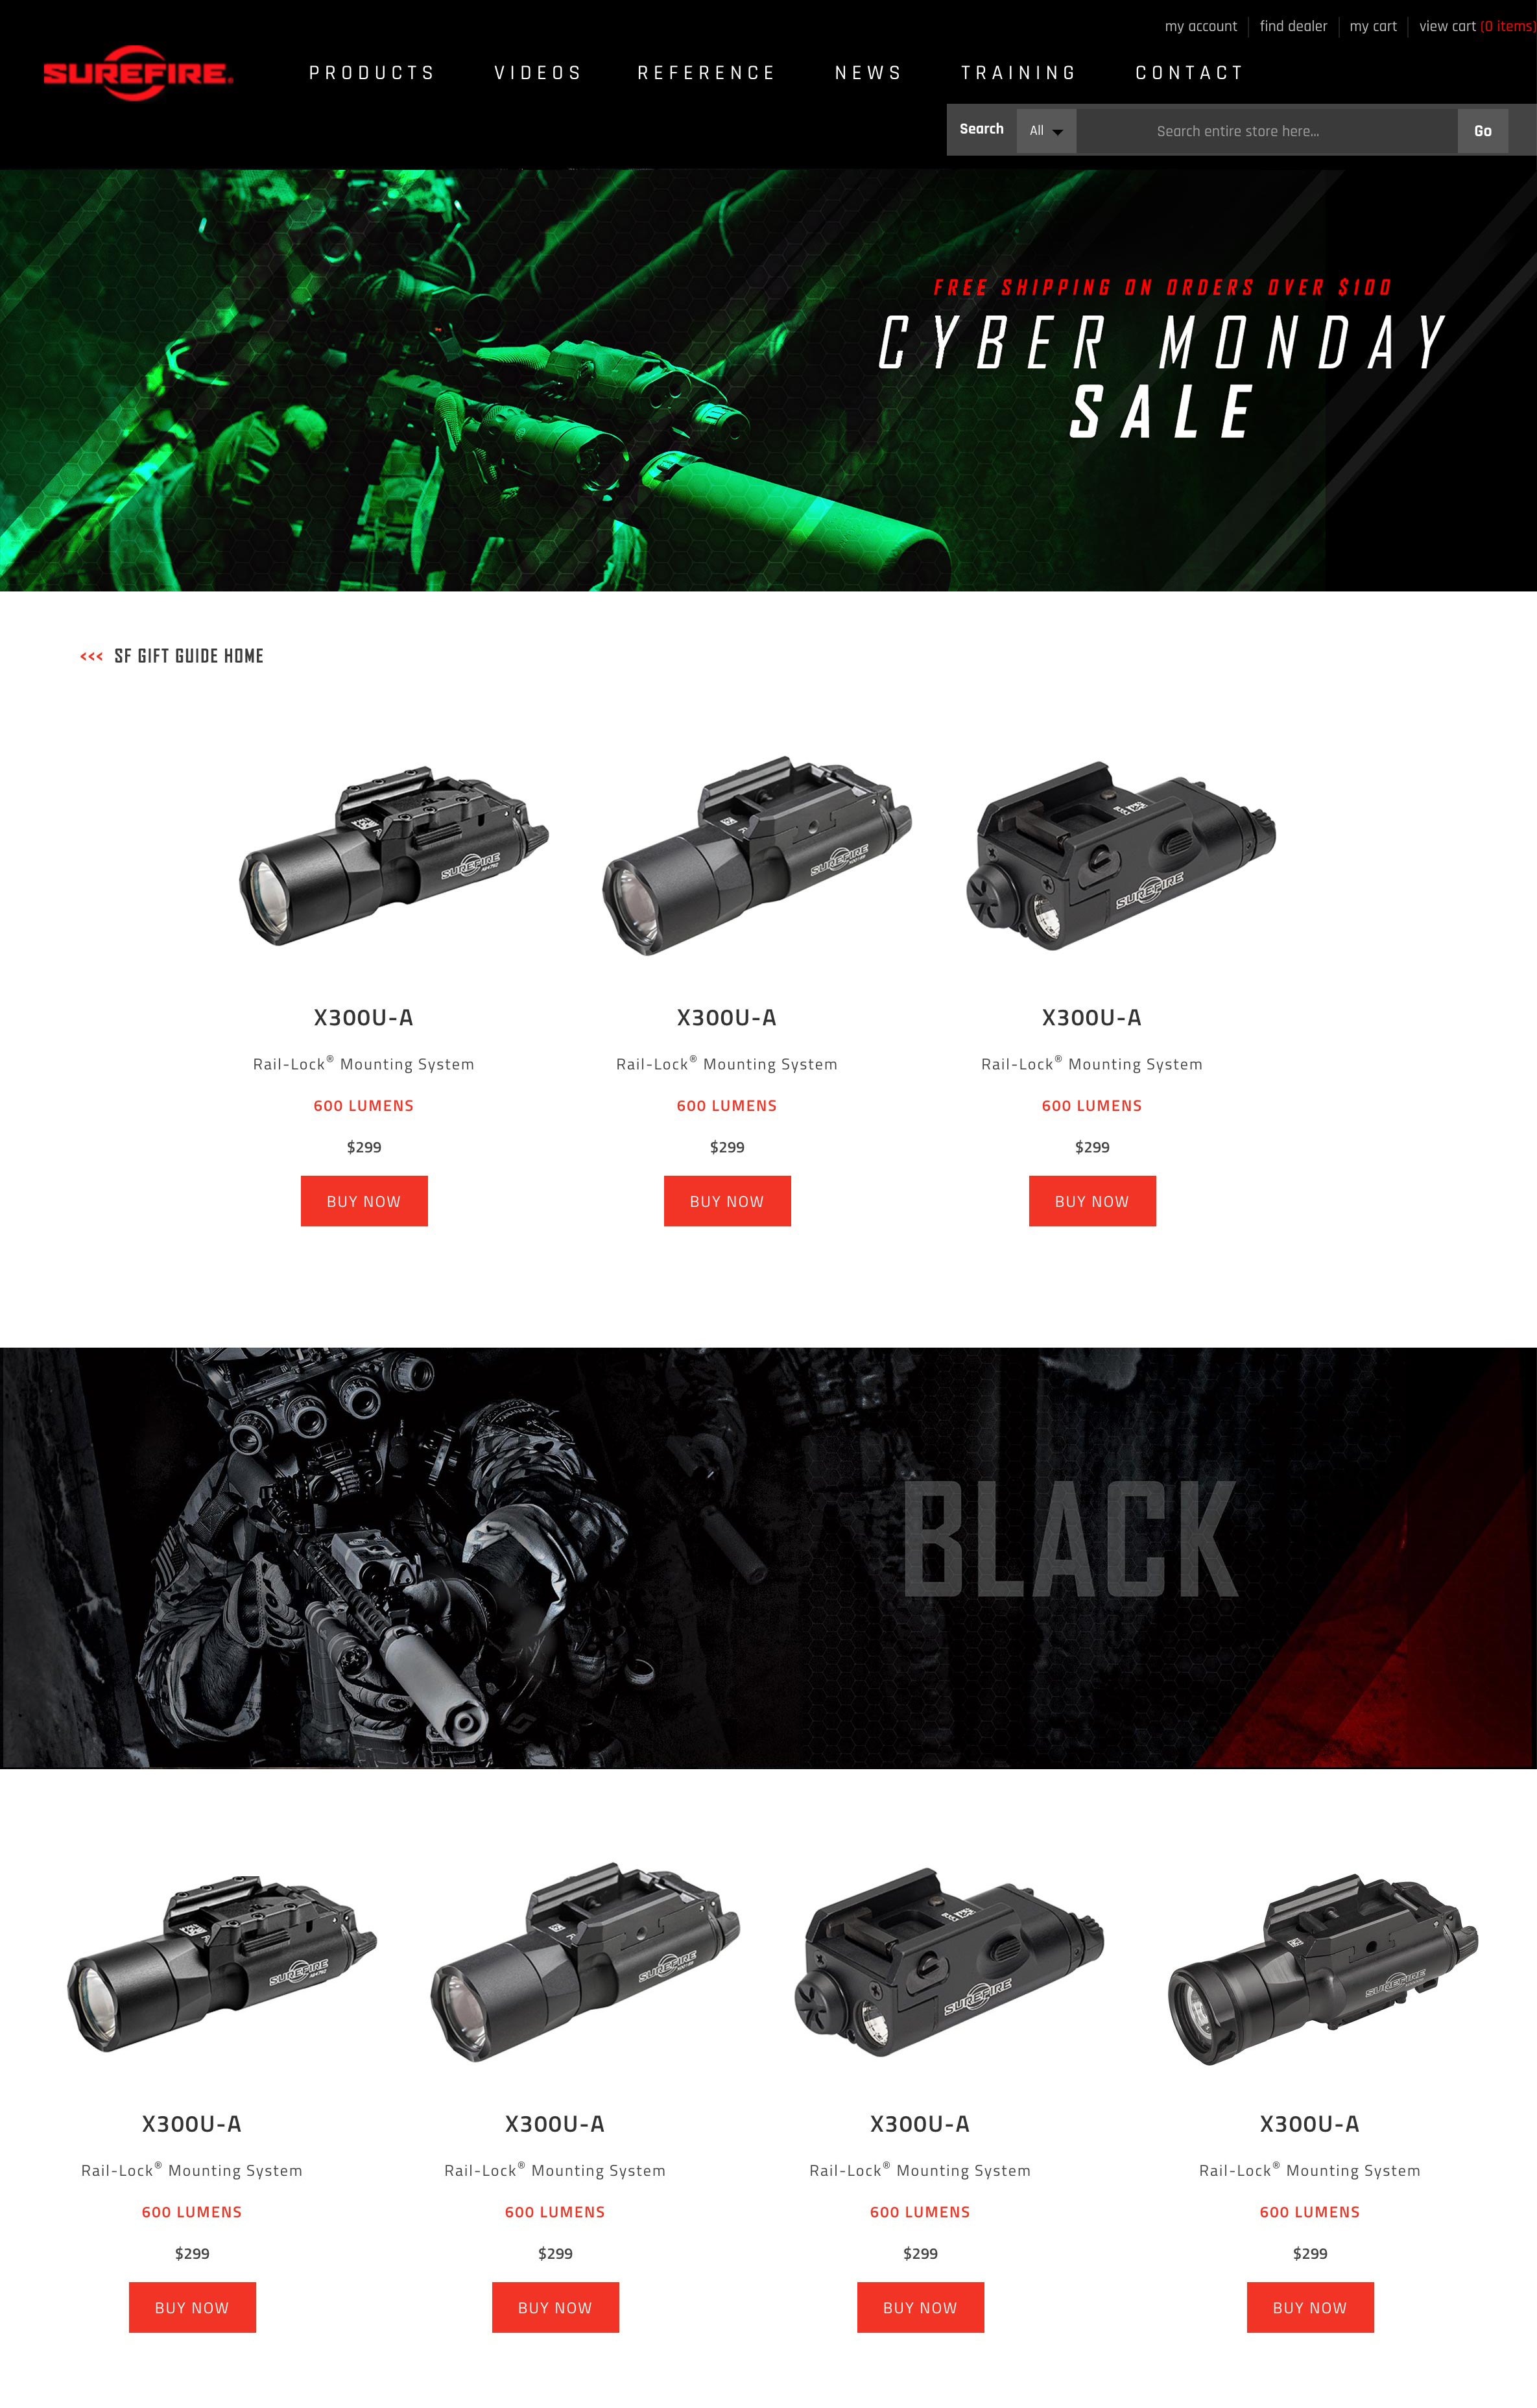 SF-BF-CM-2018-products-ALL.jpg